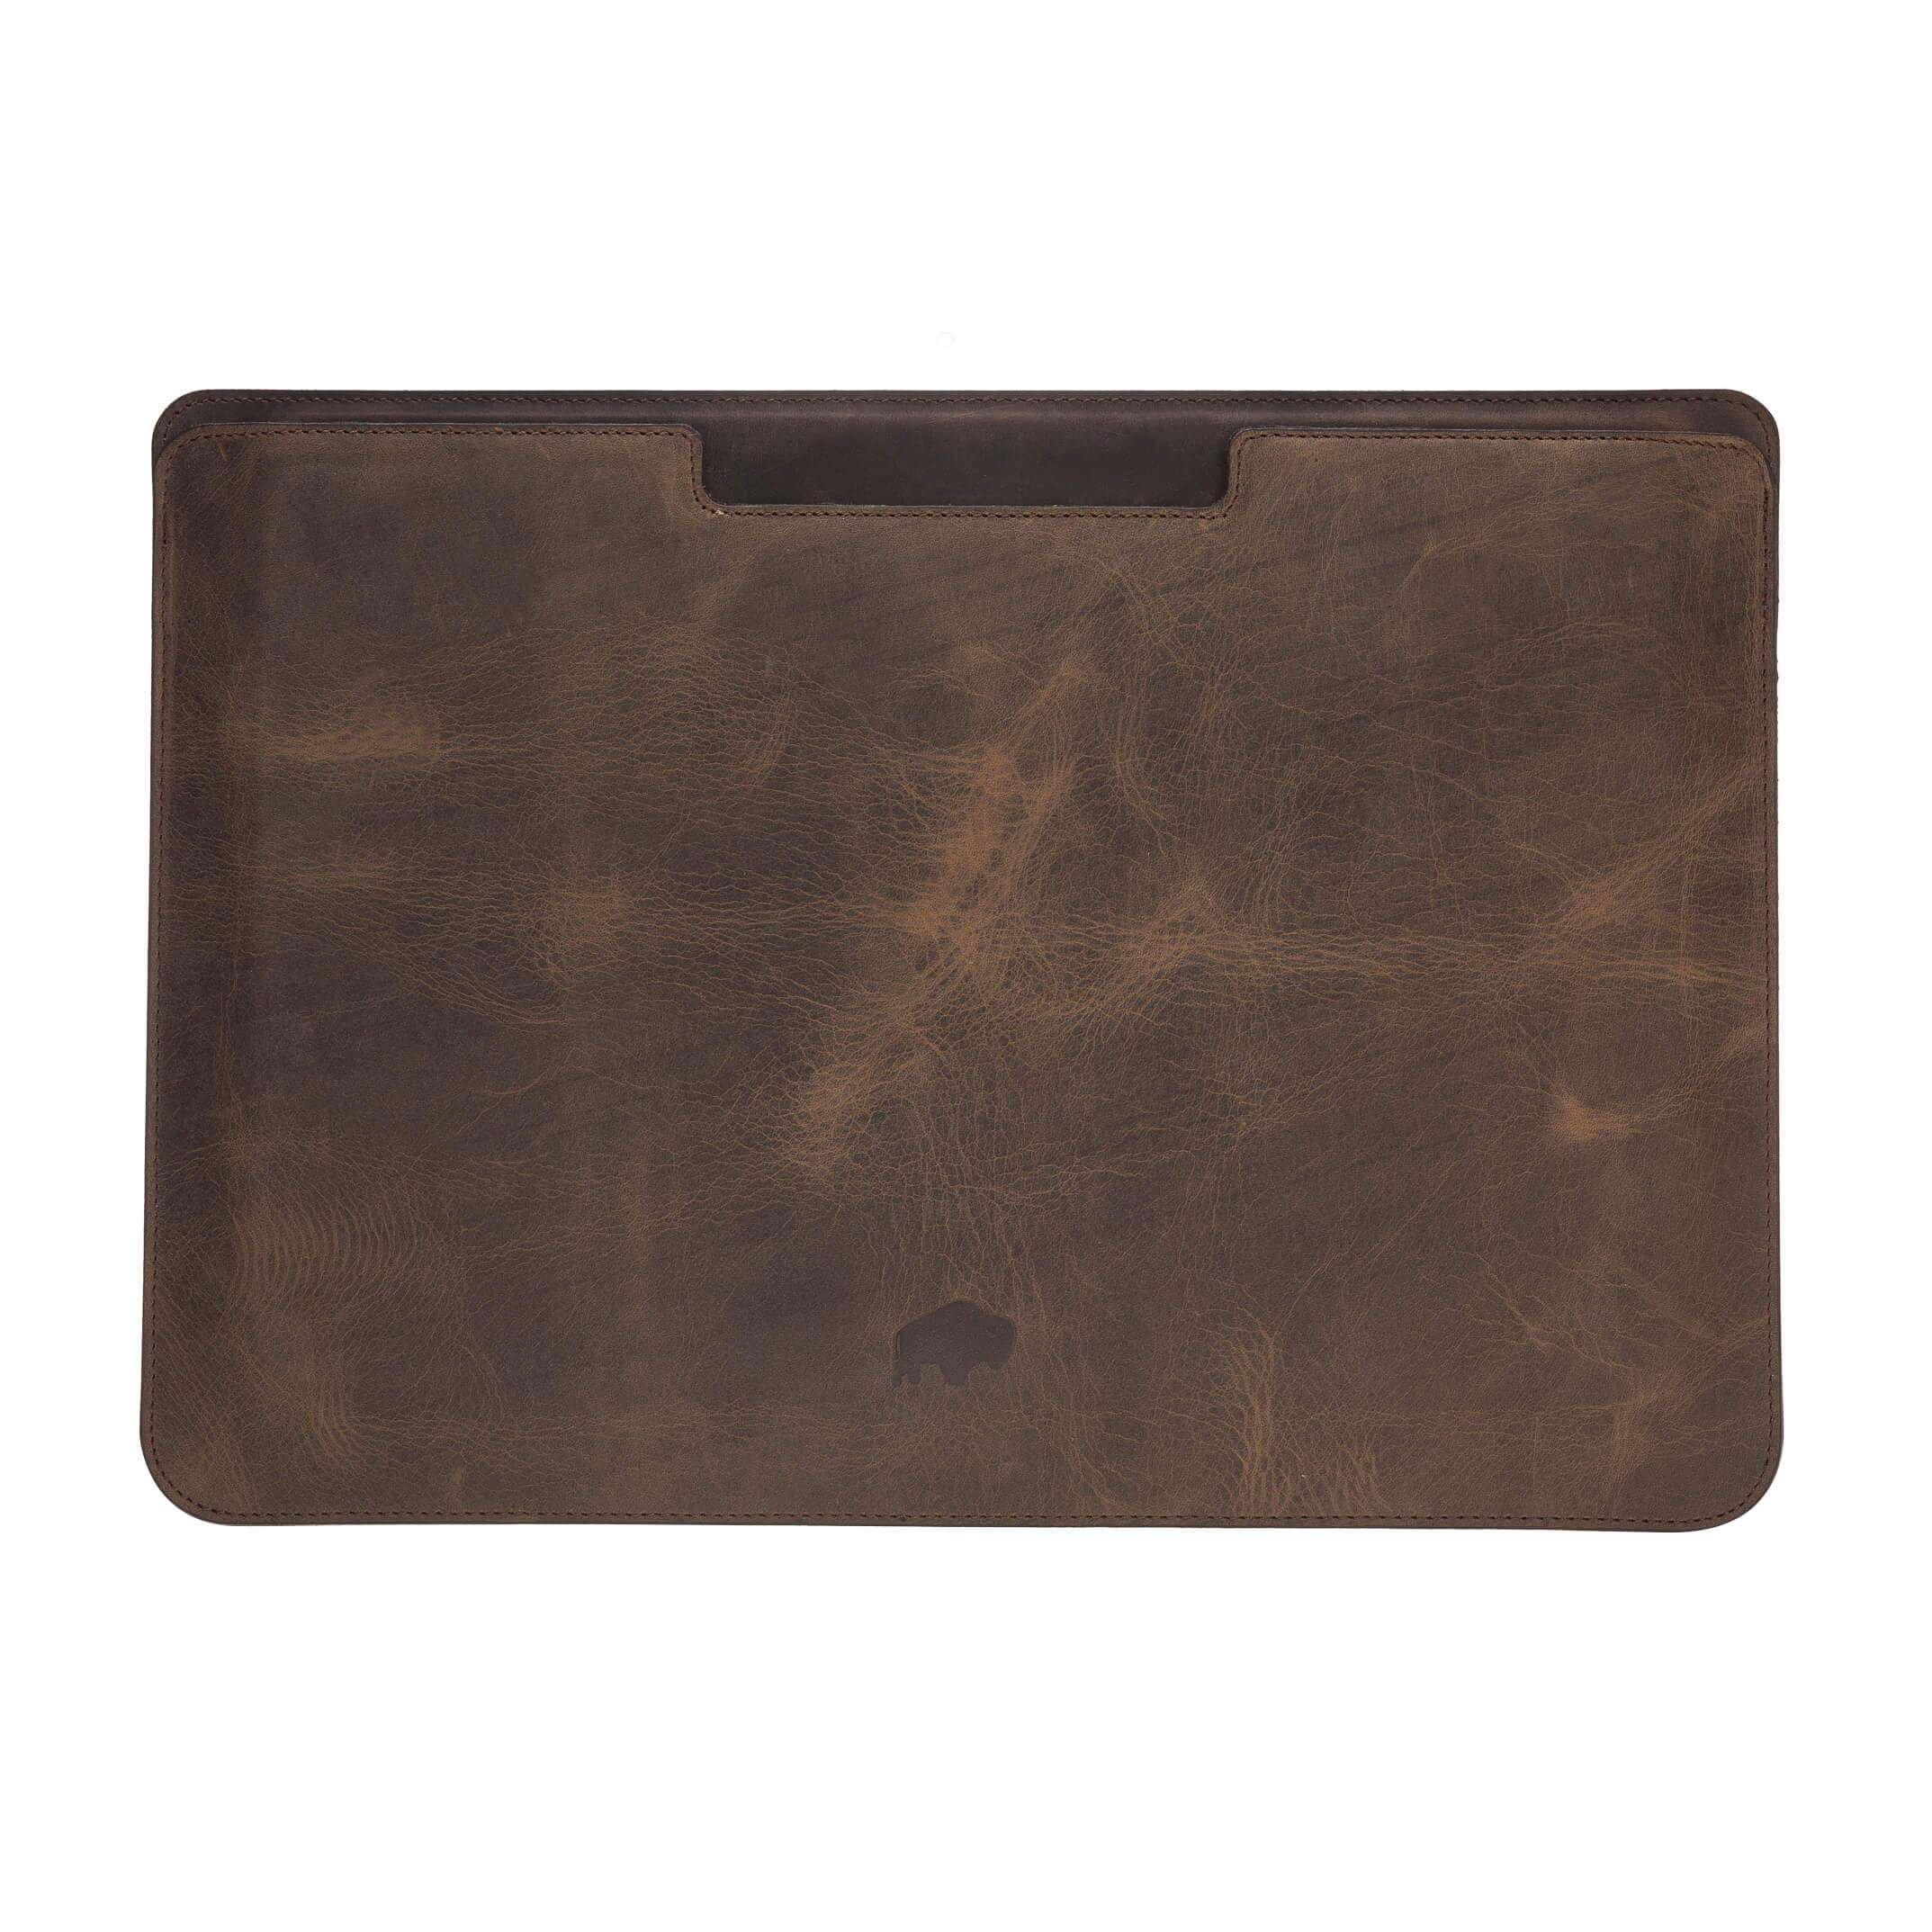 Burkley Case Compatible with MacBook Pro 15'' Burkley Leather Sleeve, Handcrafted and Full Grain Leather for MacBook Pro 15'' (Distressed Antique Coffee) by Burkley Case (Image #1)